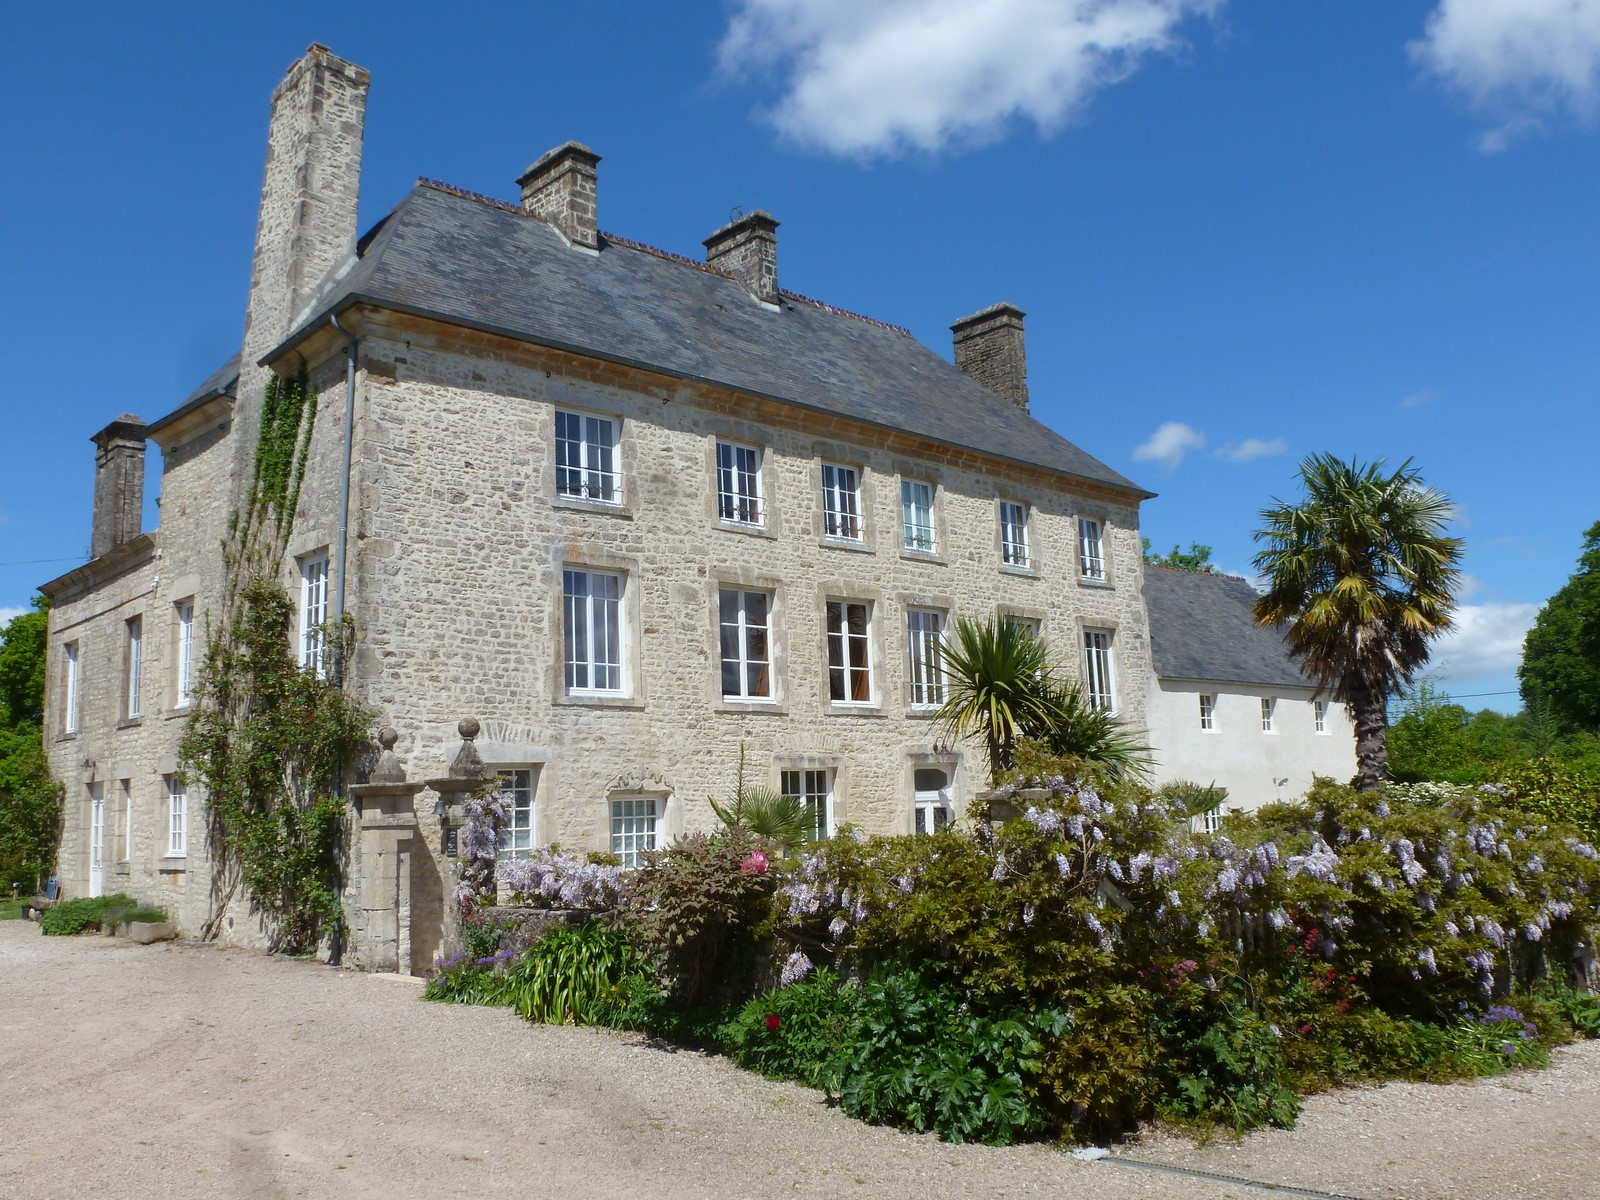 The manoir de savigny